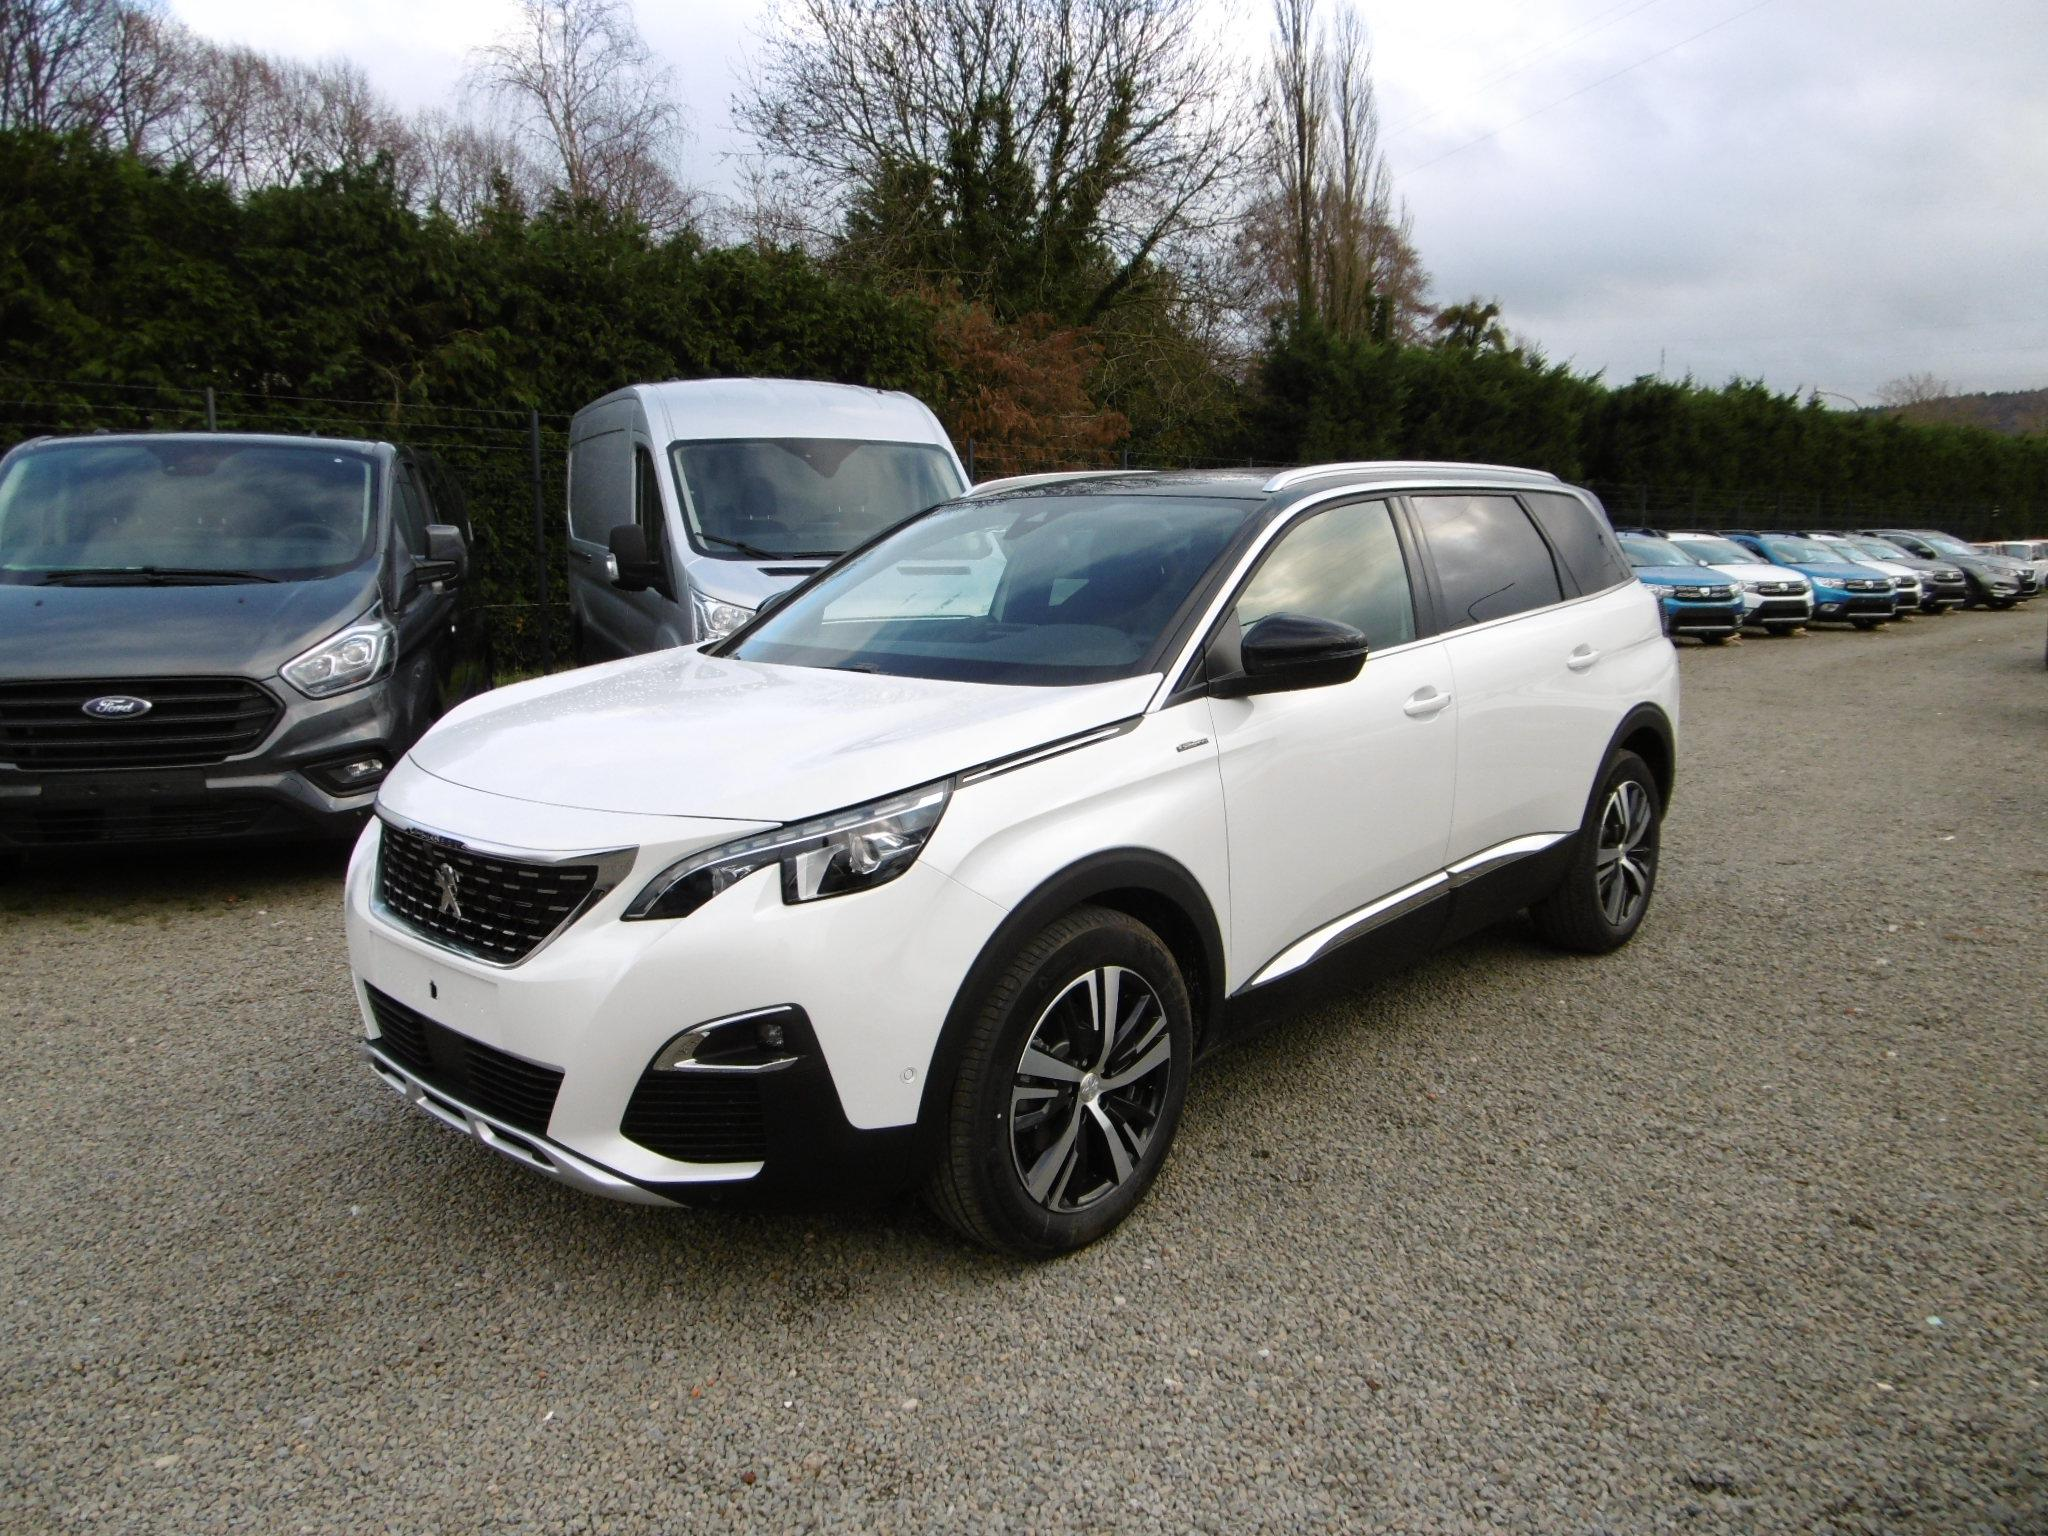 Photo Peugeot 5008 1.5 BlueHDI 130 EAT8 GT Line